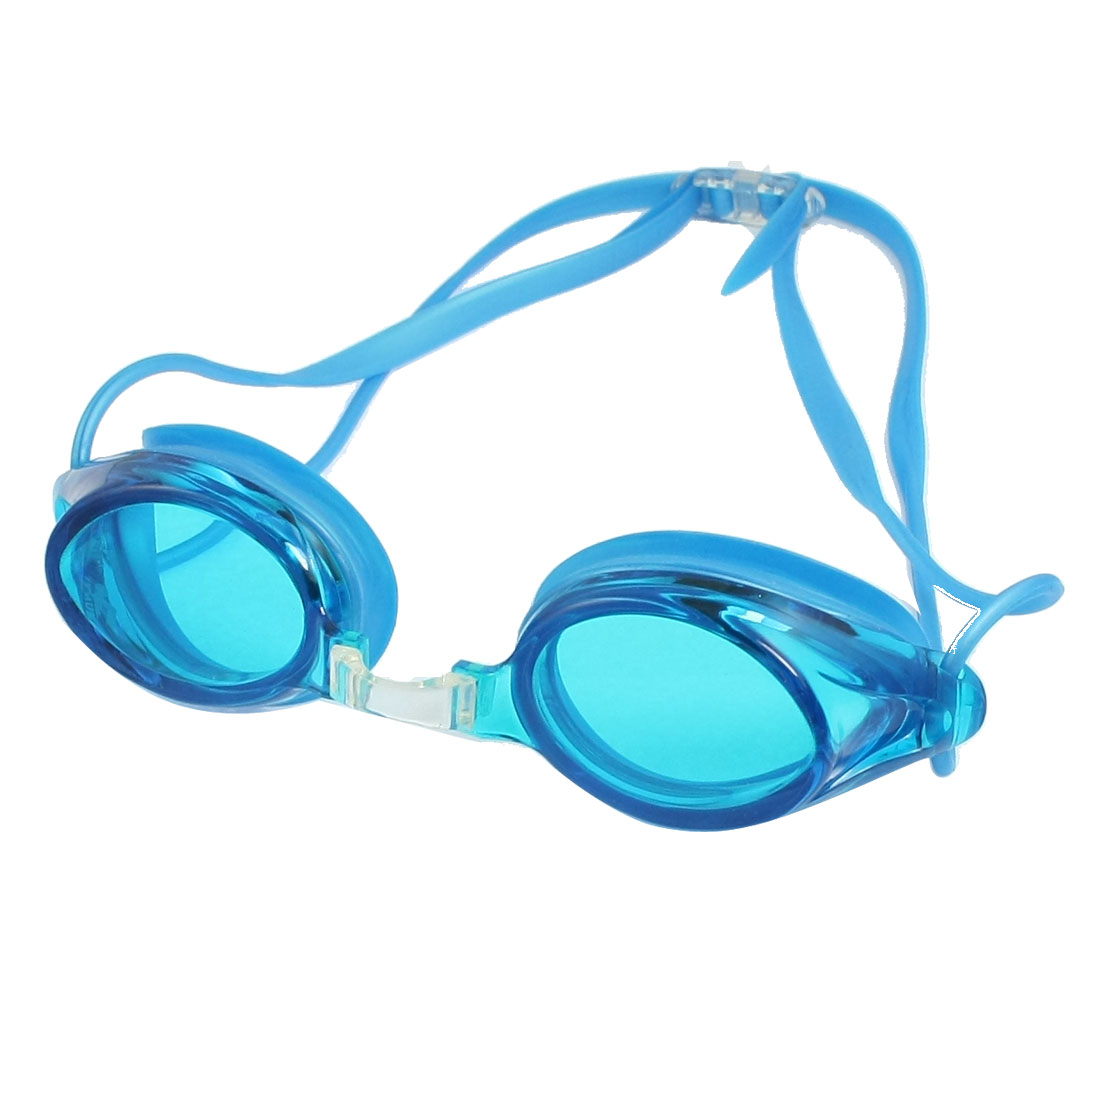 Replaceable Bridge Silicone Sky Blue Adjustable Double Headstraps Swimming Goggles